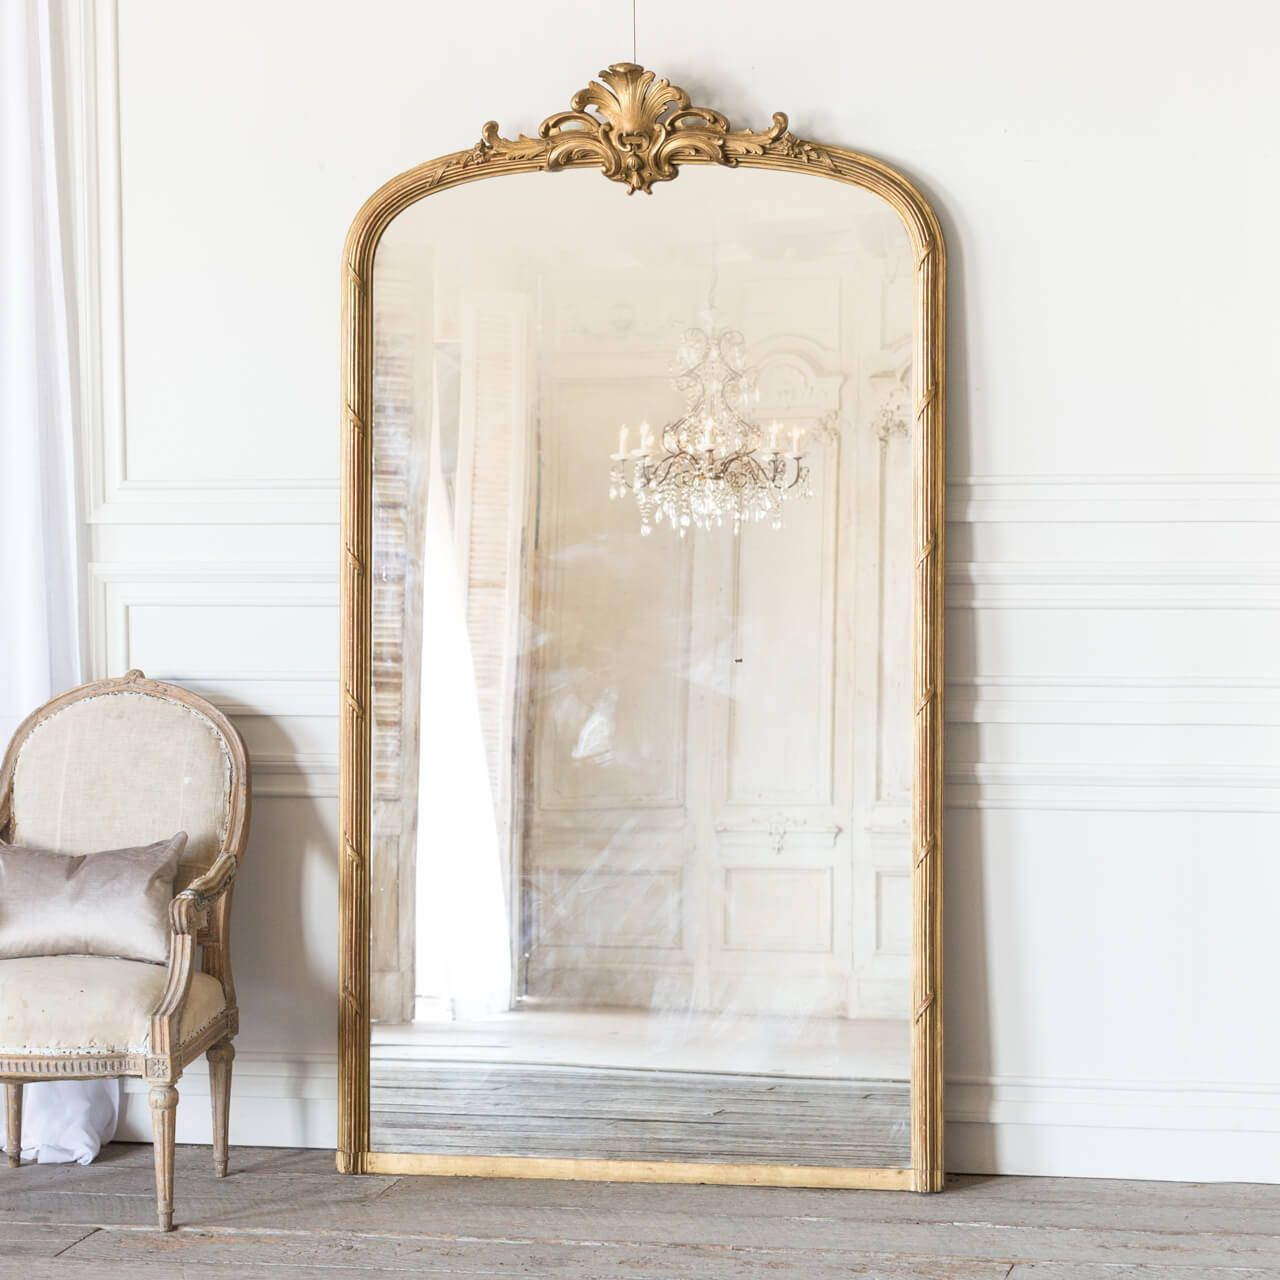 Eloquence Antique French Rounded Arched Mirror With Crest